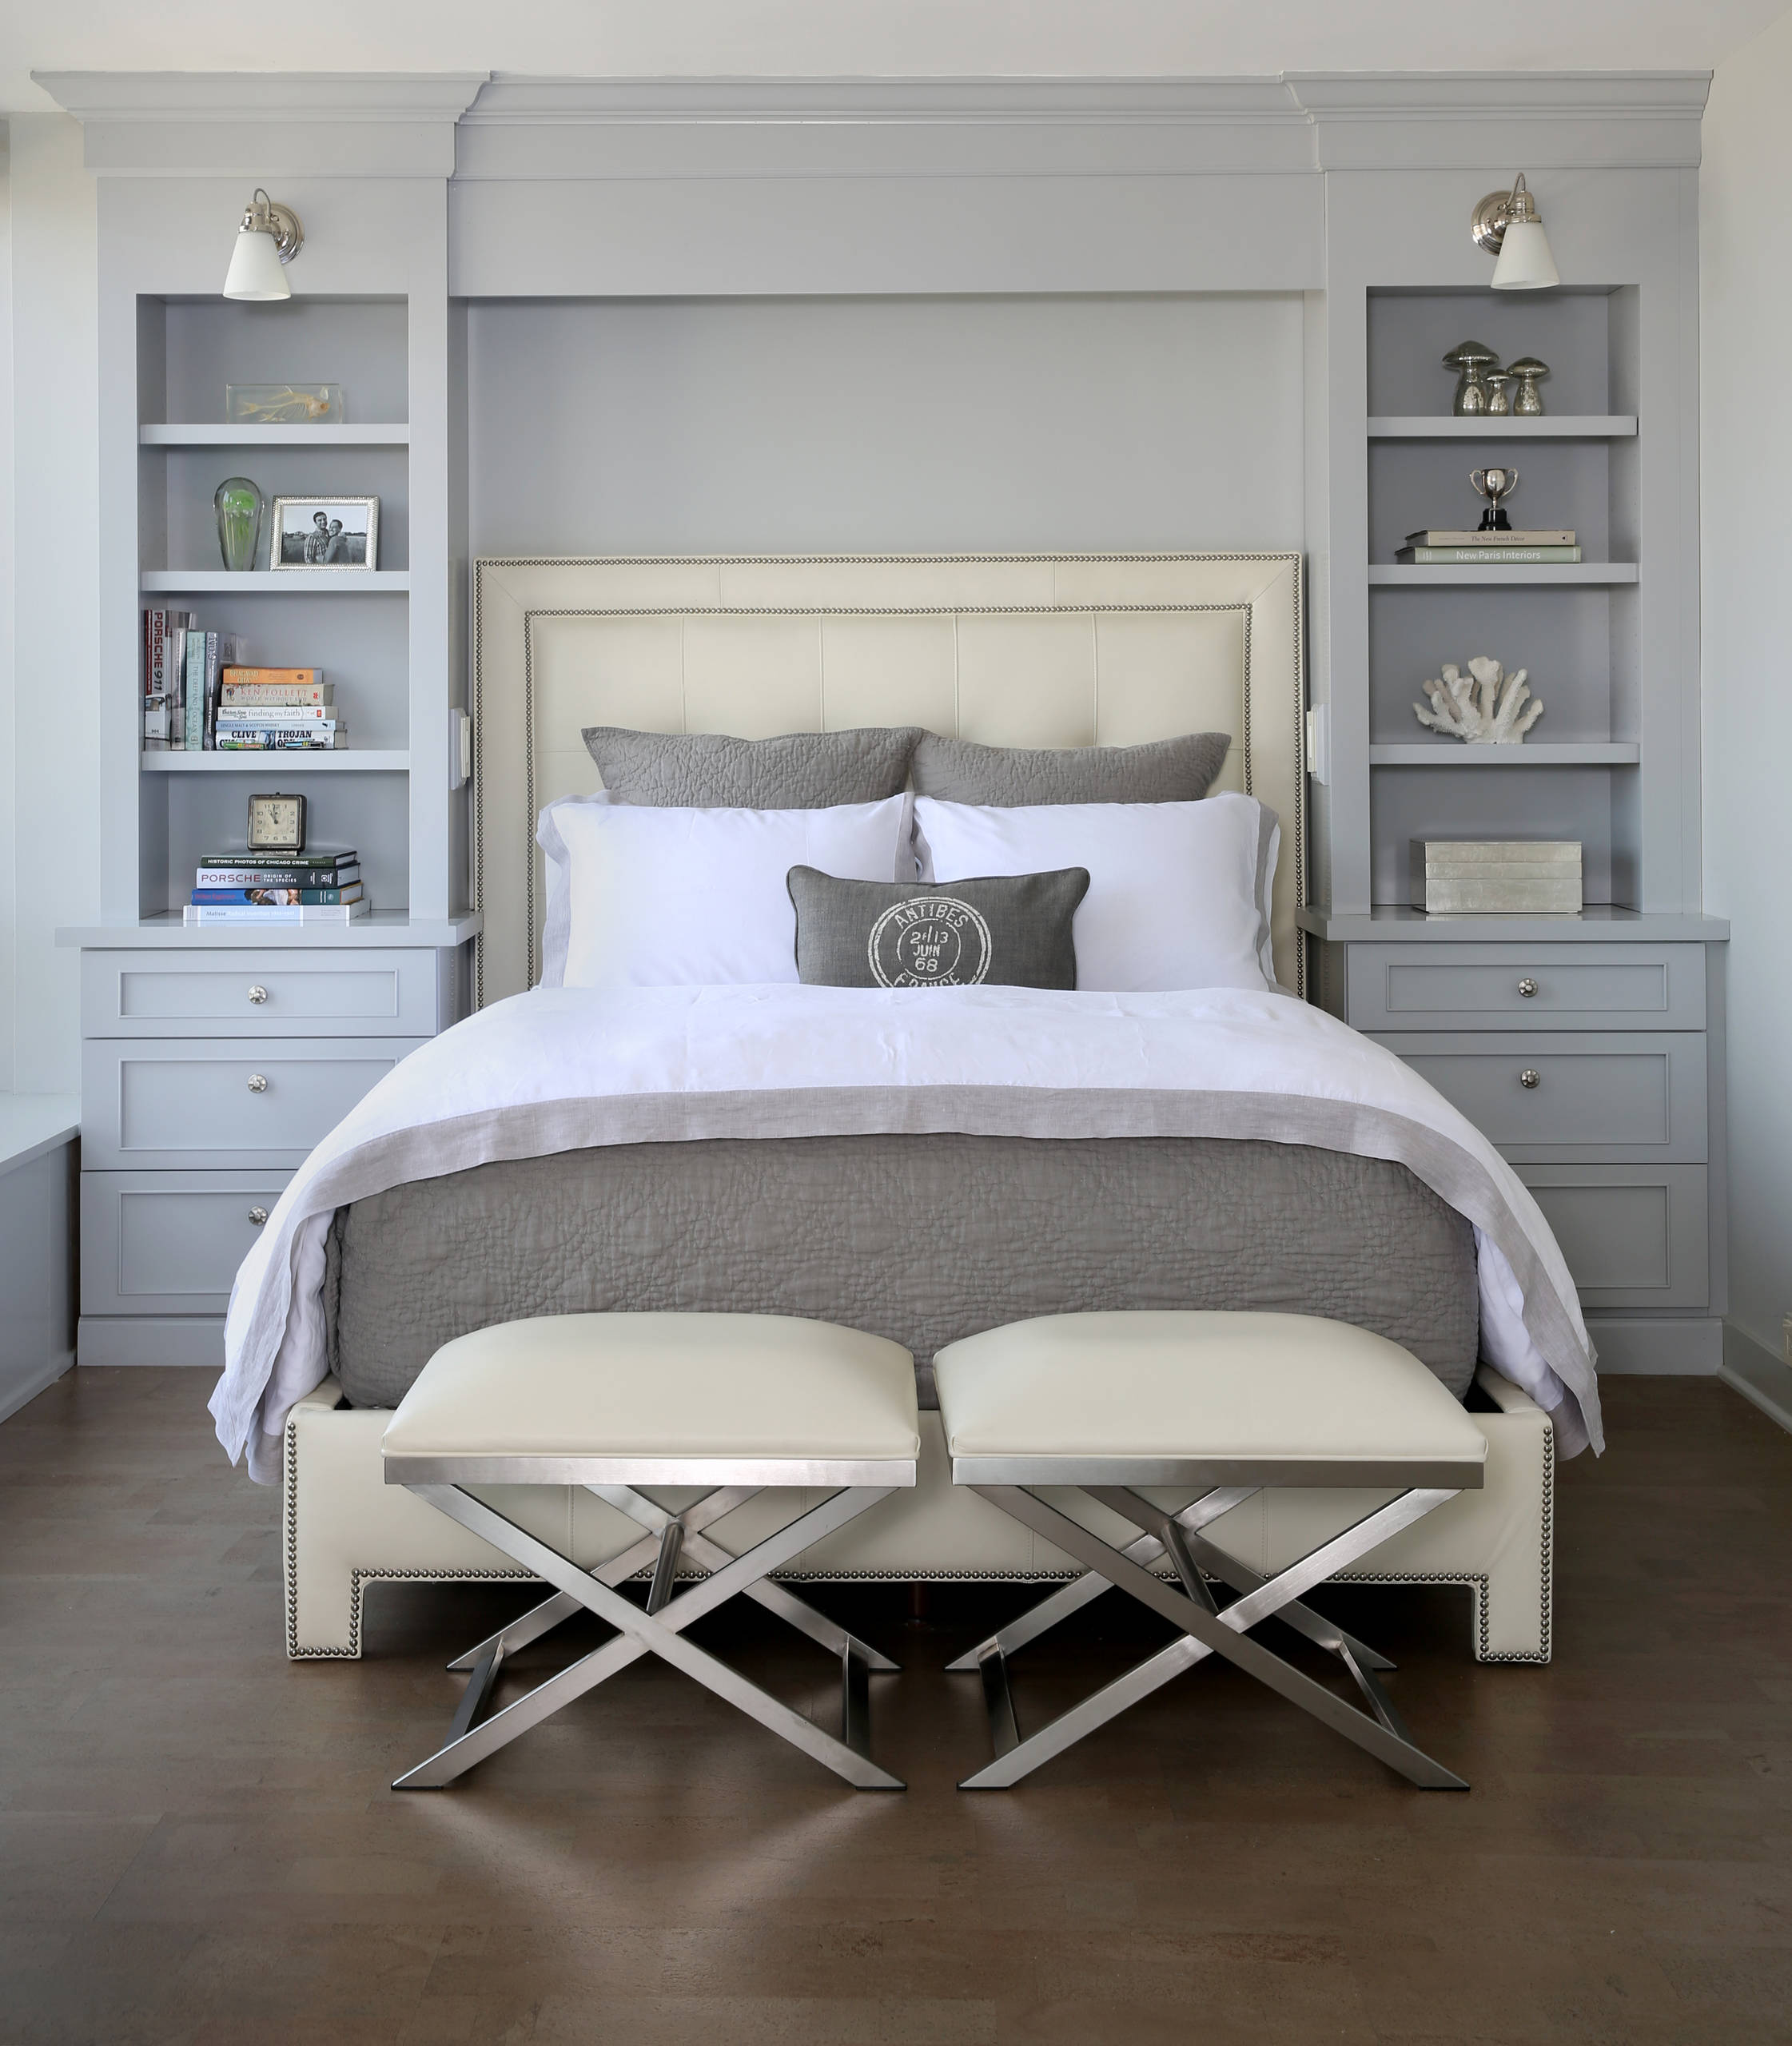 10 Beautiful Small Bedroom With Gray Walls Pictures & Ideas